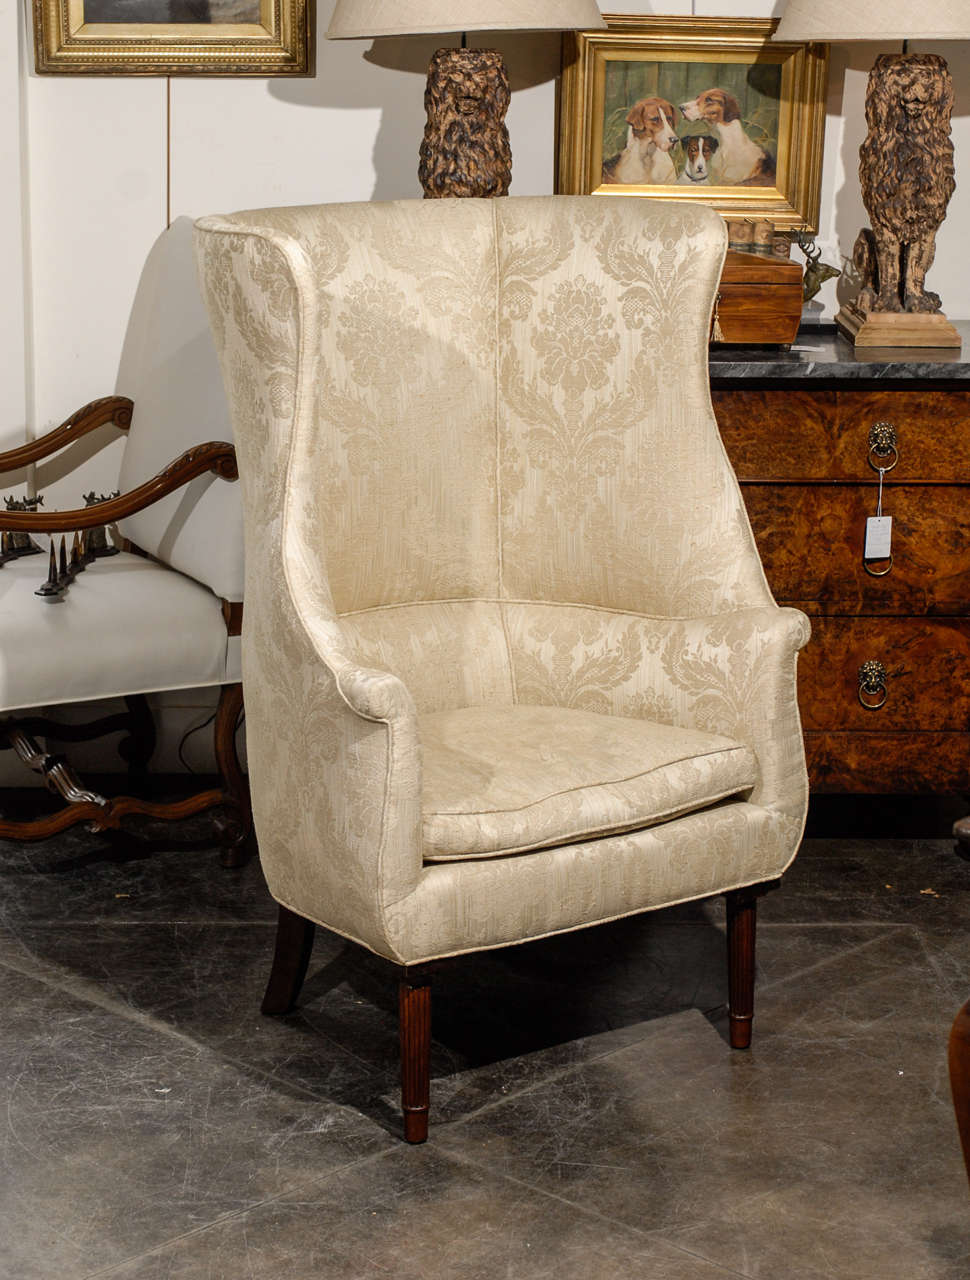 barrel back chair black and white accent chairs with arms 1920s large upholstered wing raised on four reeded unknown legs for sale